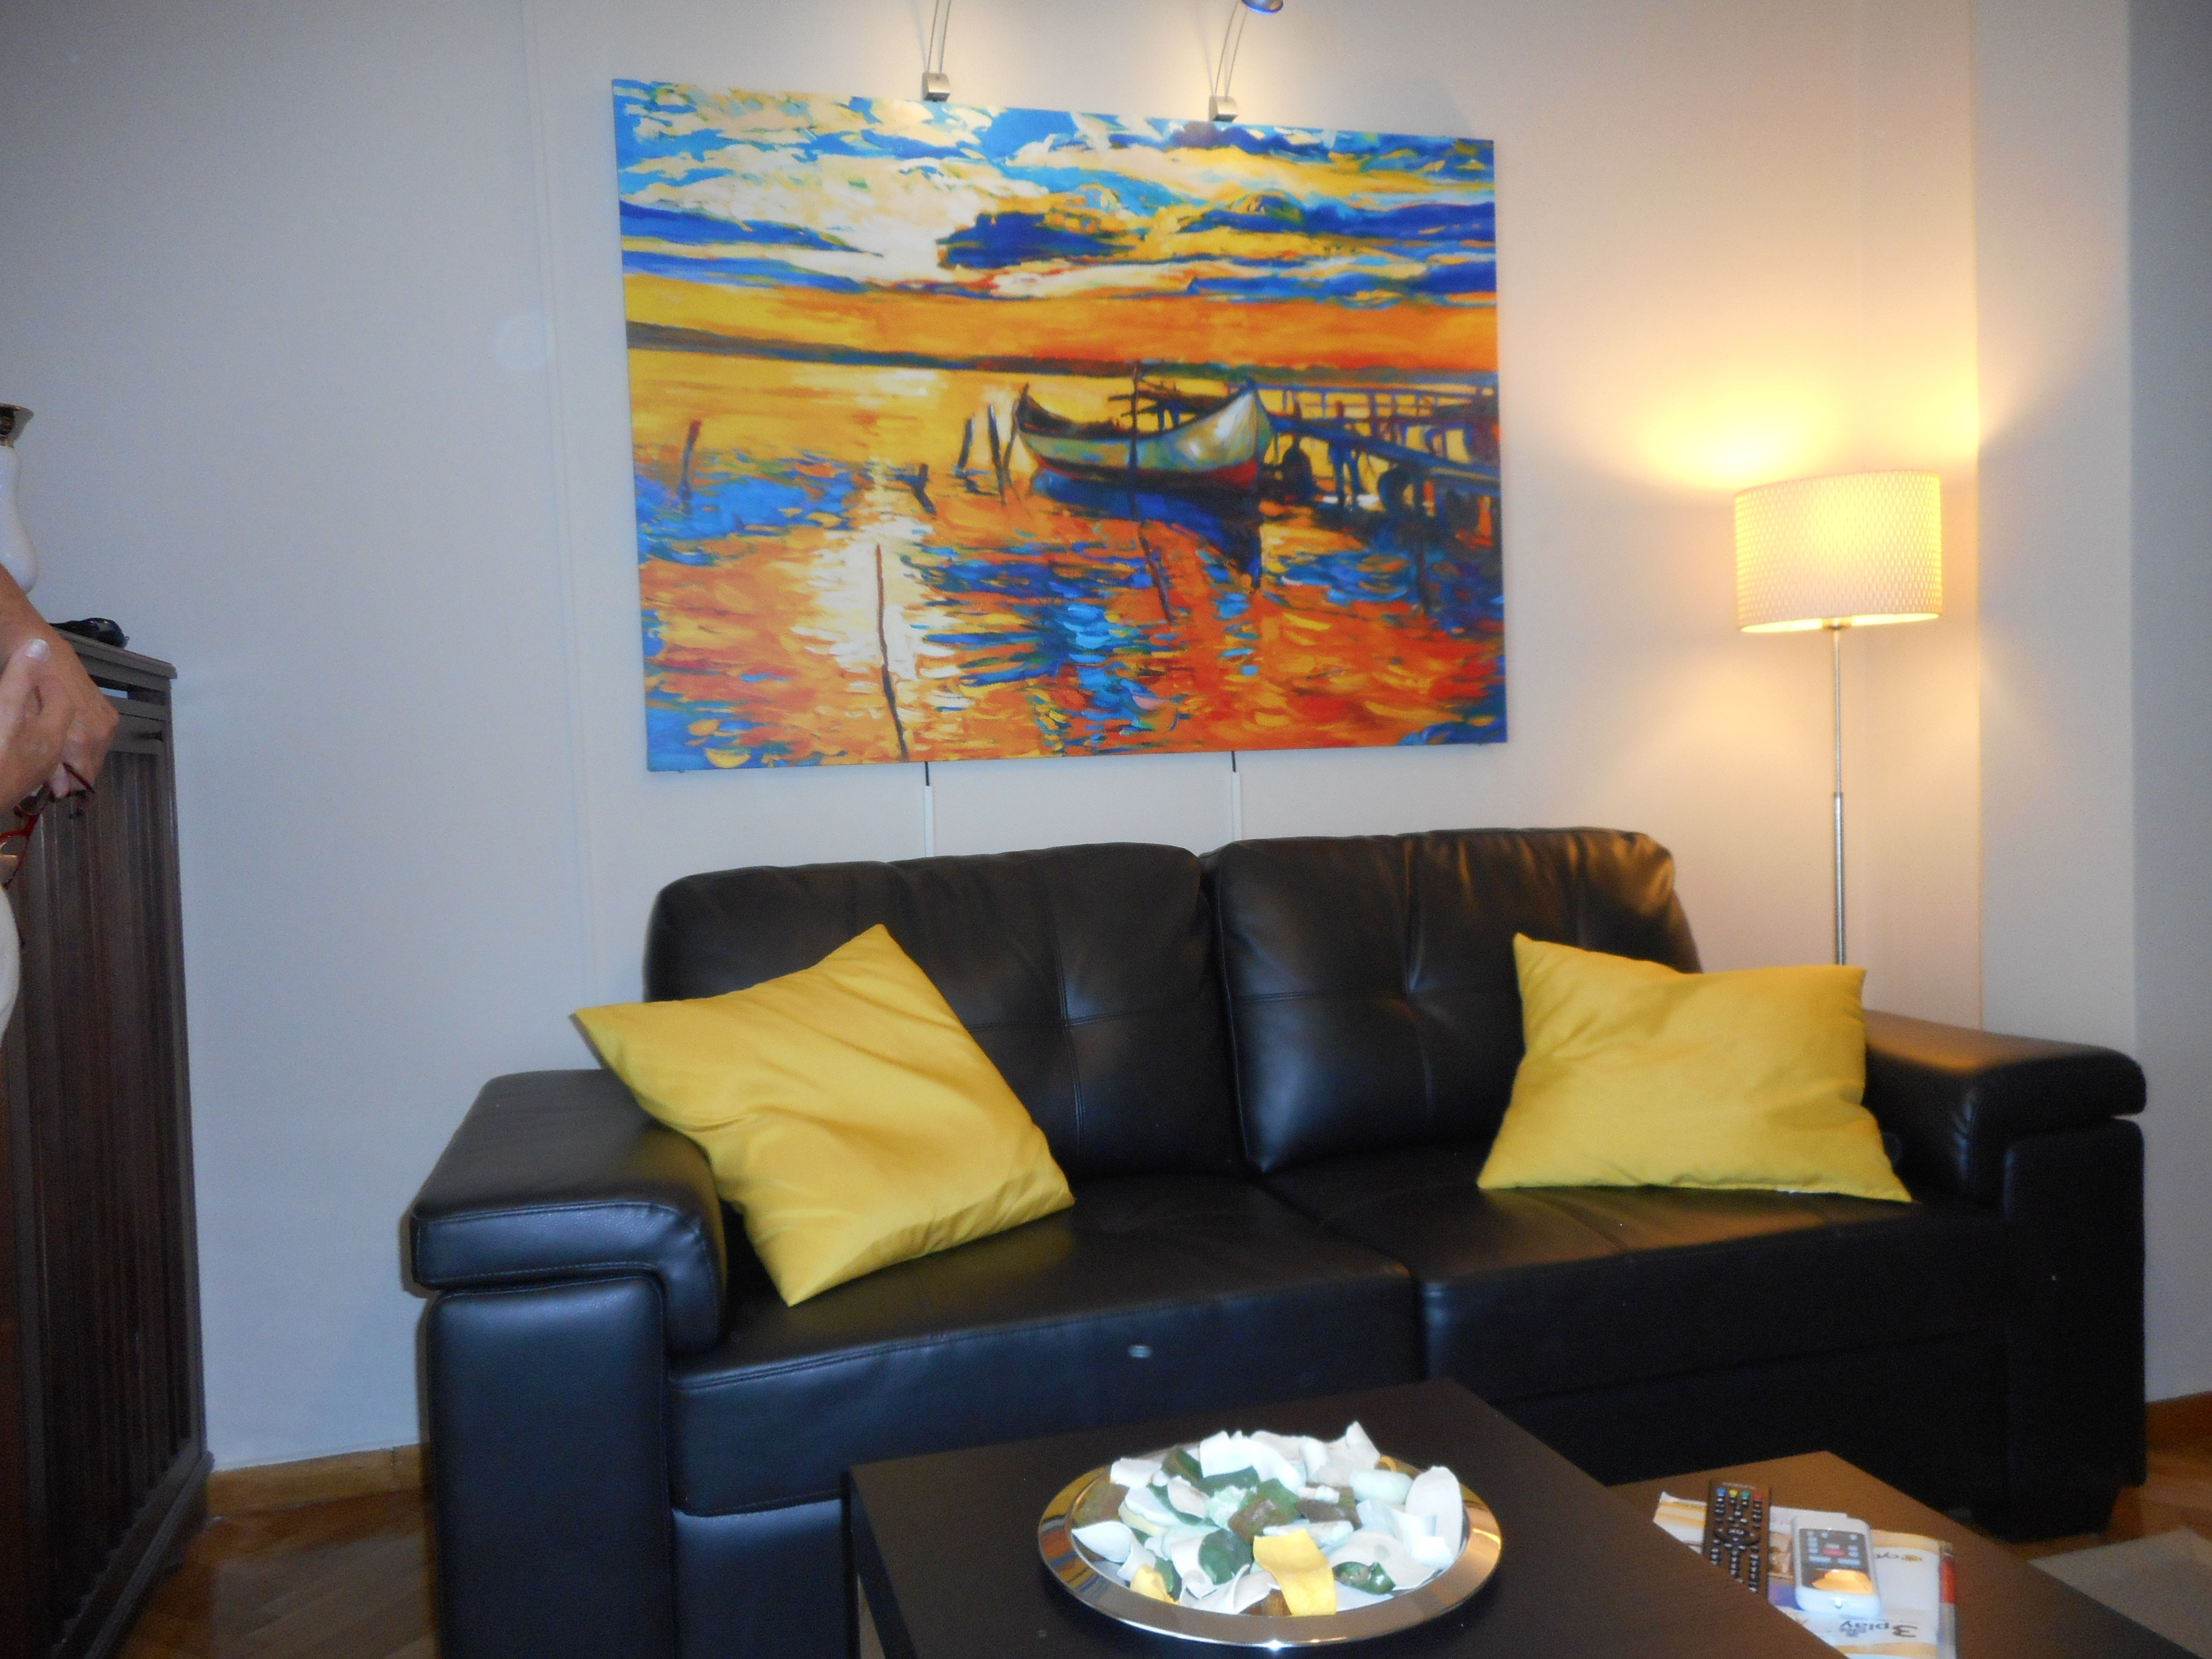 Apartment Ultracareapartments - Athens - City Center - 1 Bedroom Apartment photo 21795756